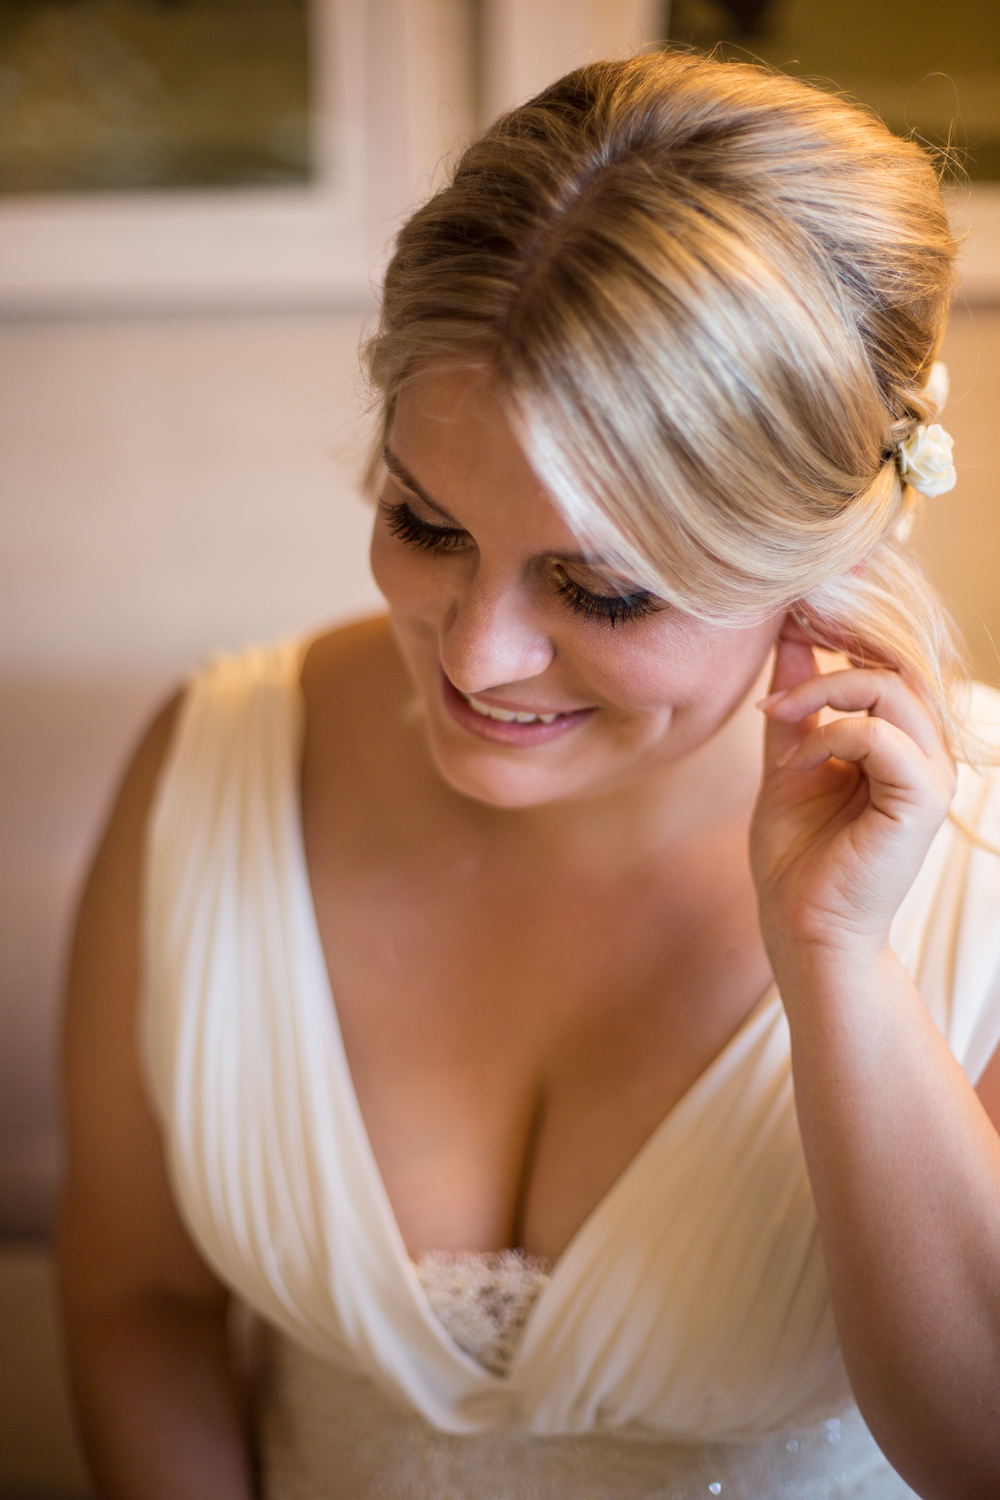 islington-london-bridal-prep-2